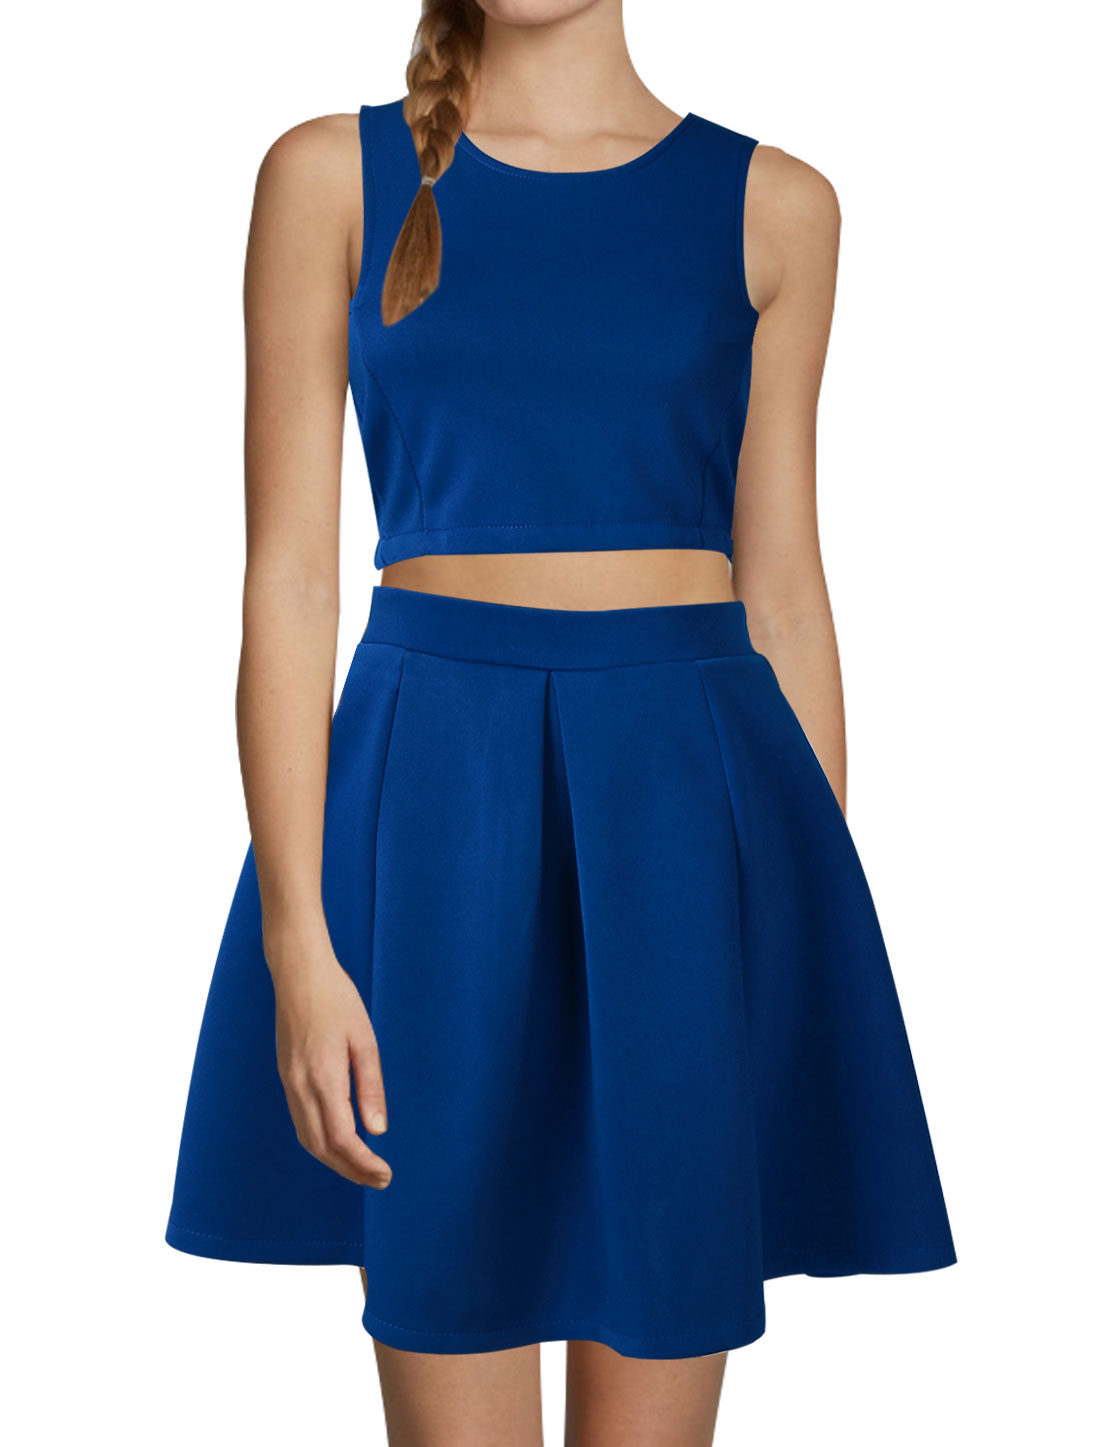 Women Sleeveless Zipper Back Cropped Tops w Pleated Unlined Skirts Sets Blue S